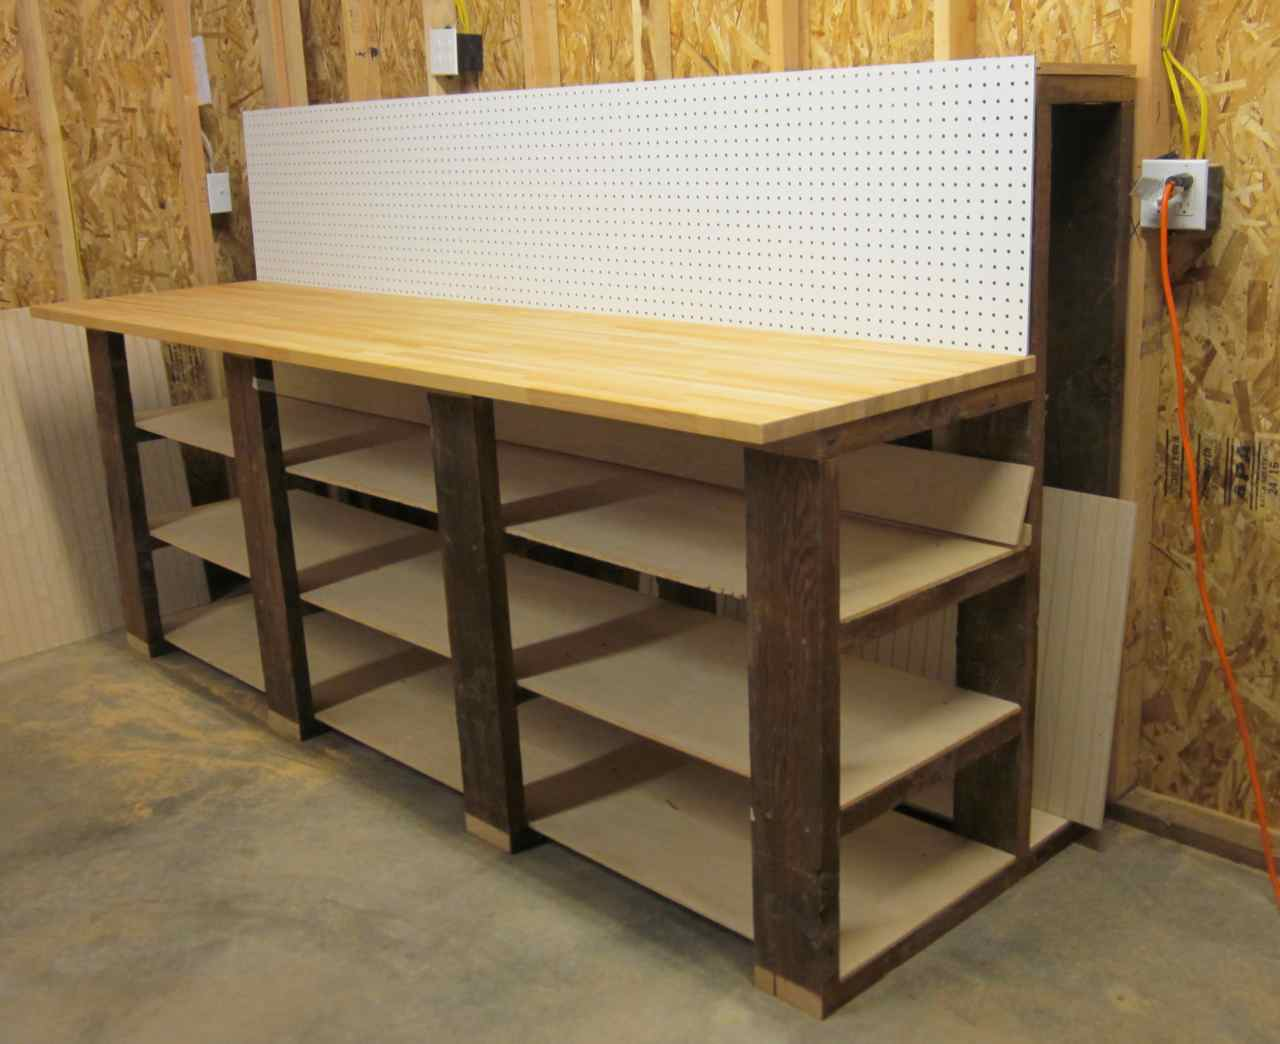 Wood Workbenches Spotlats